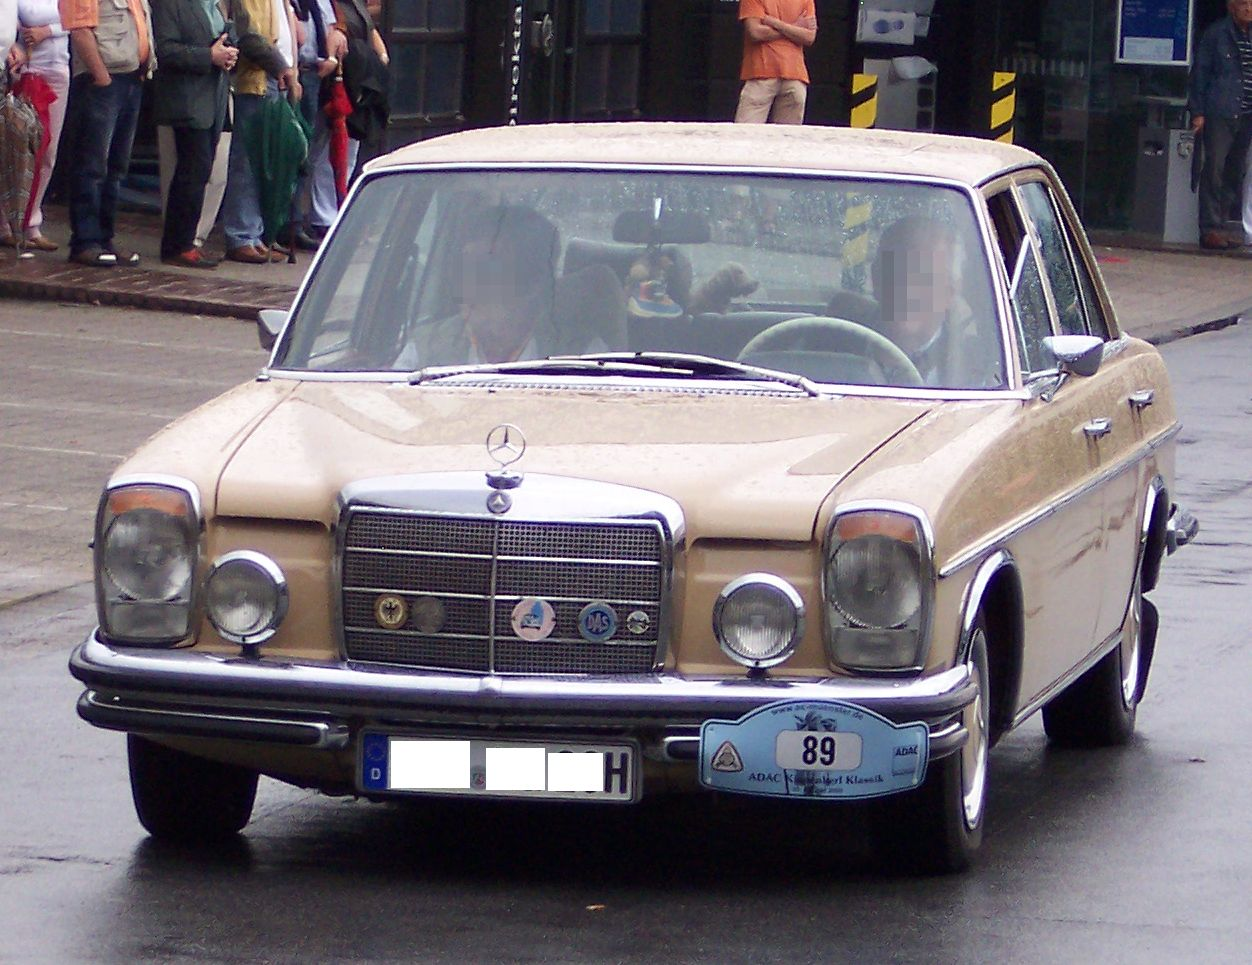 mercedes-benz 220 d-pic. 2